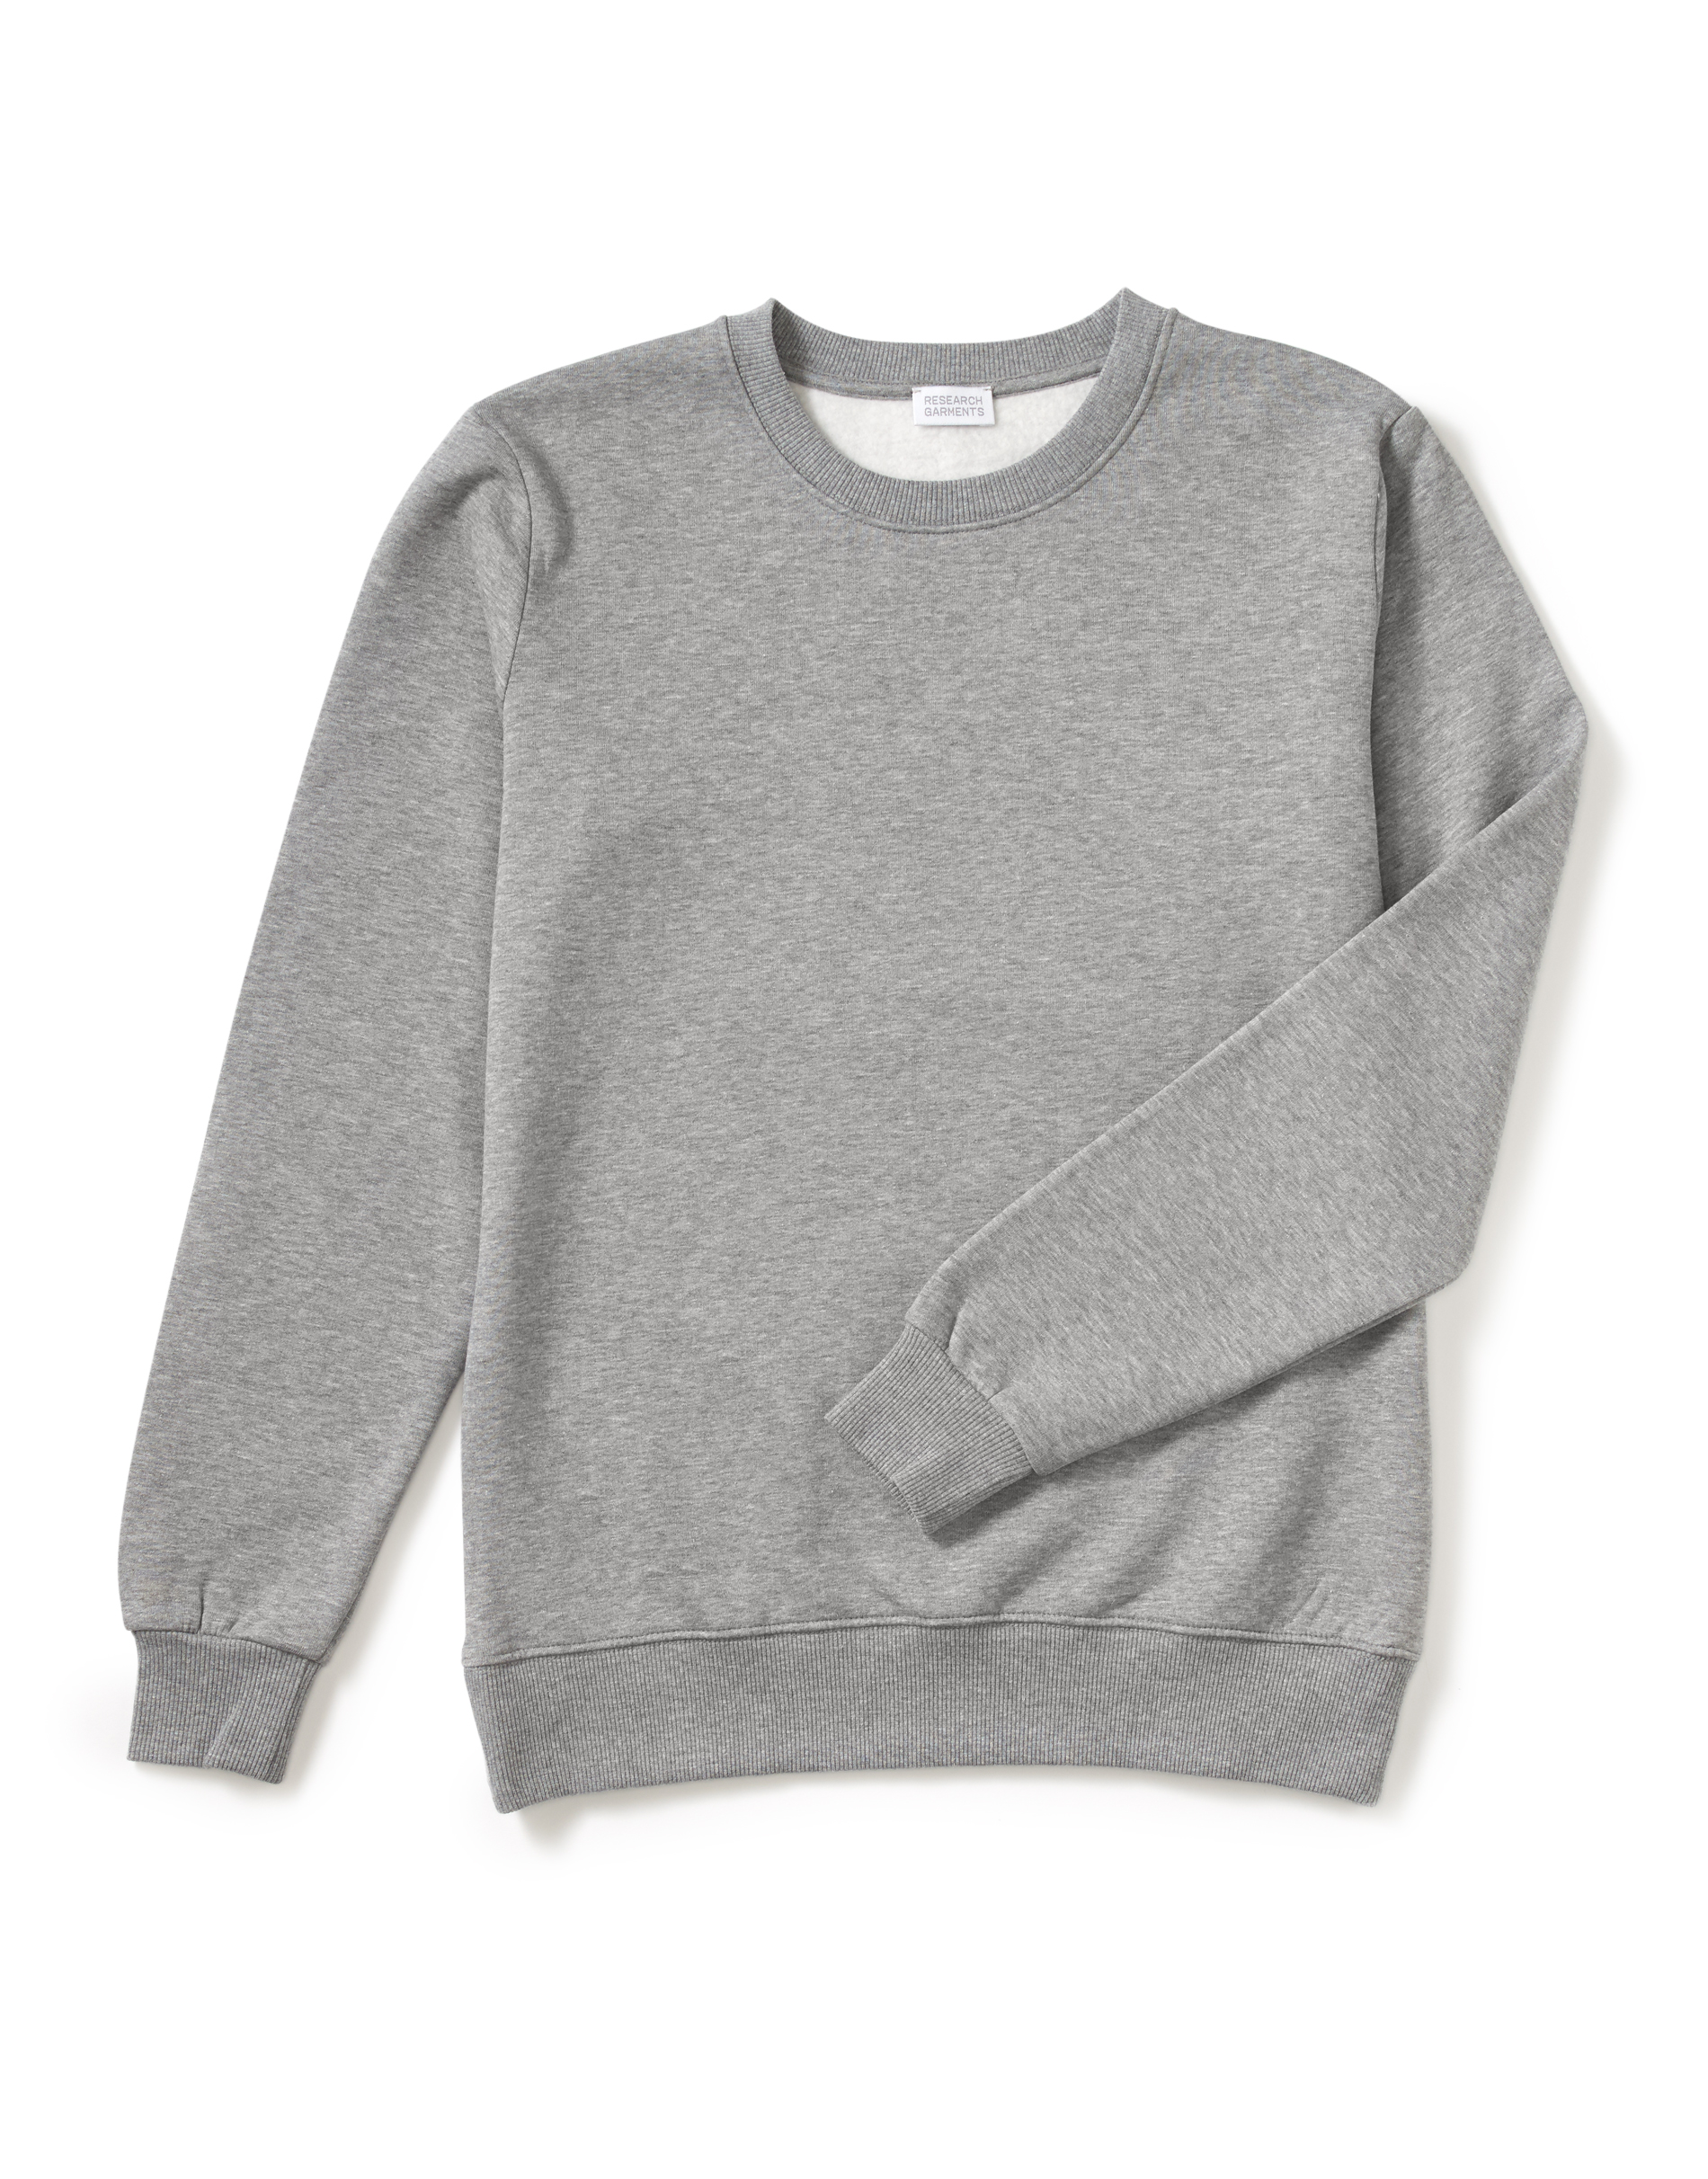 Research Garments The Perfect Grey Sweatshirt